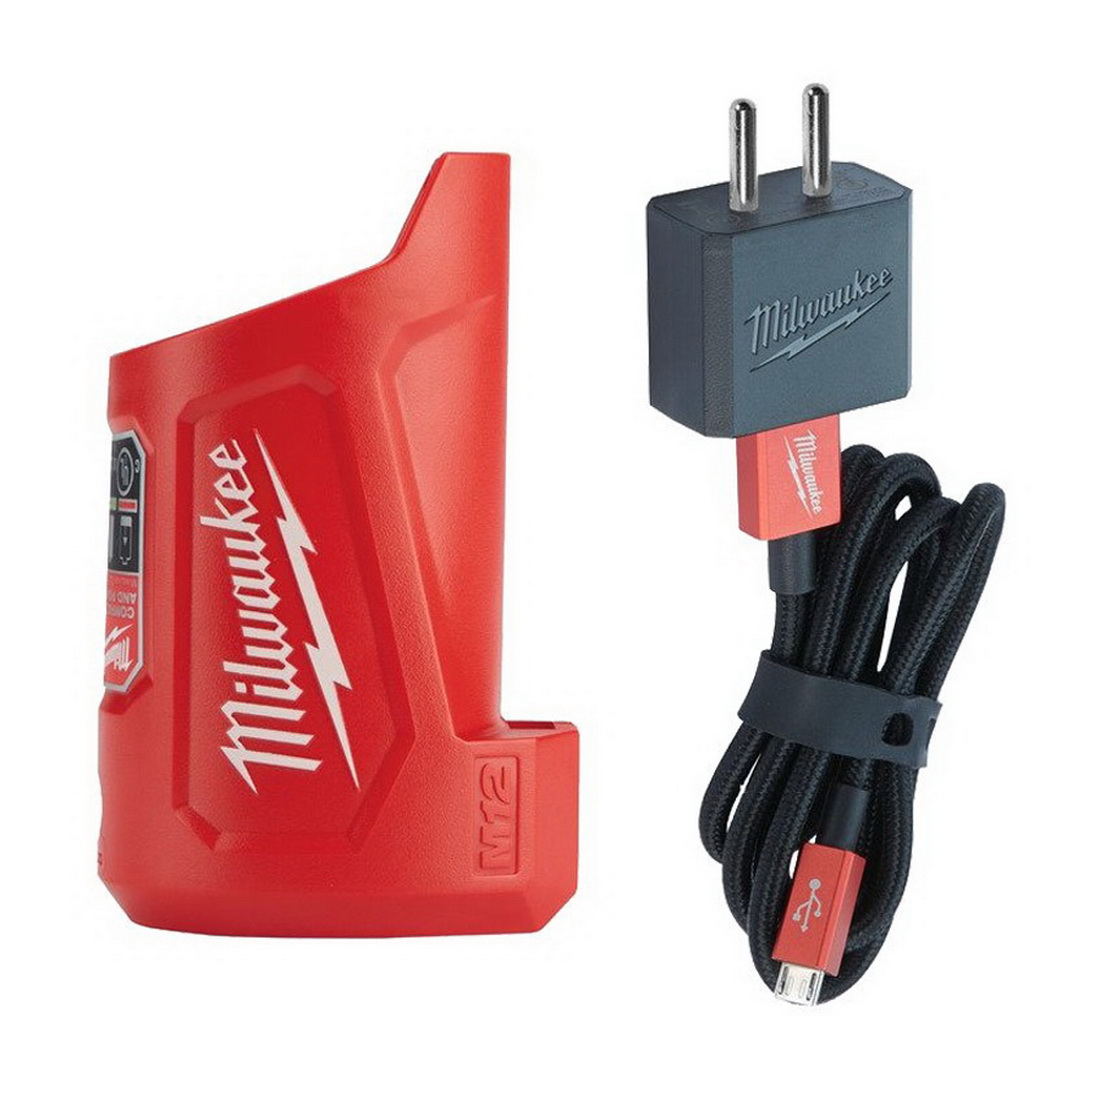 M12 Compact Travel Charger and Power Source